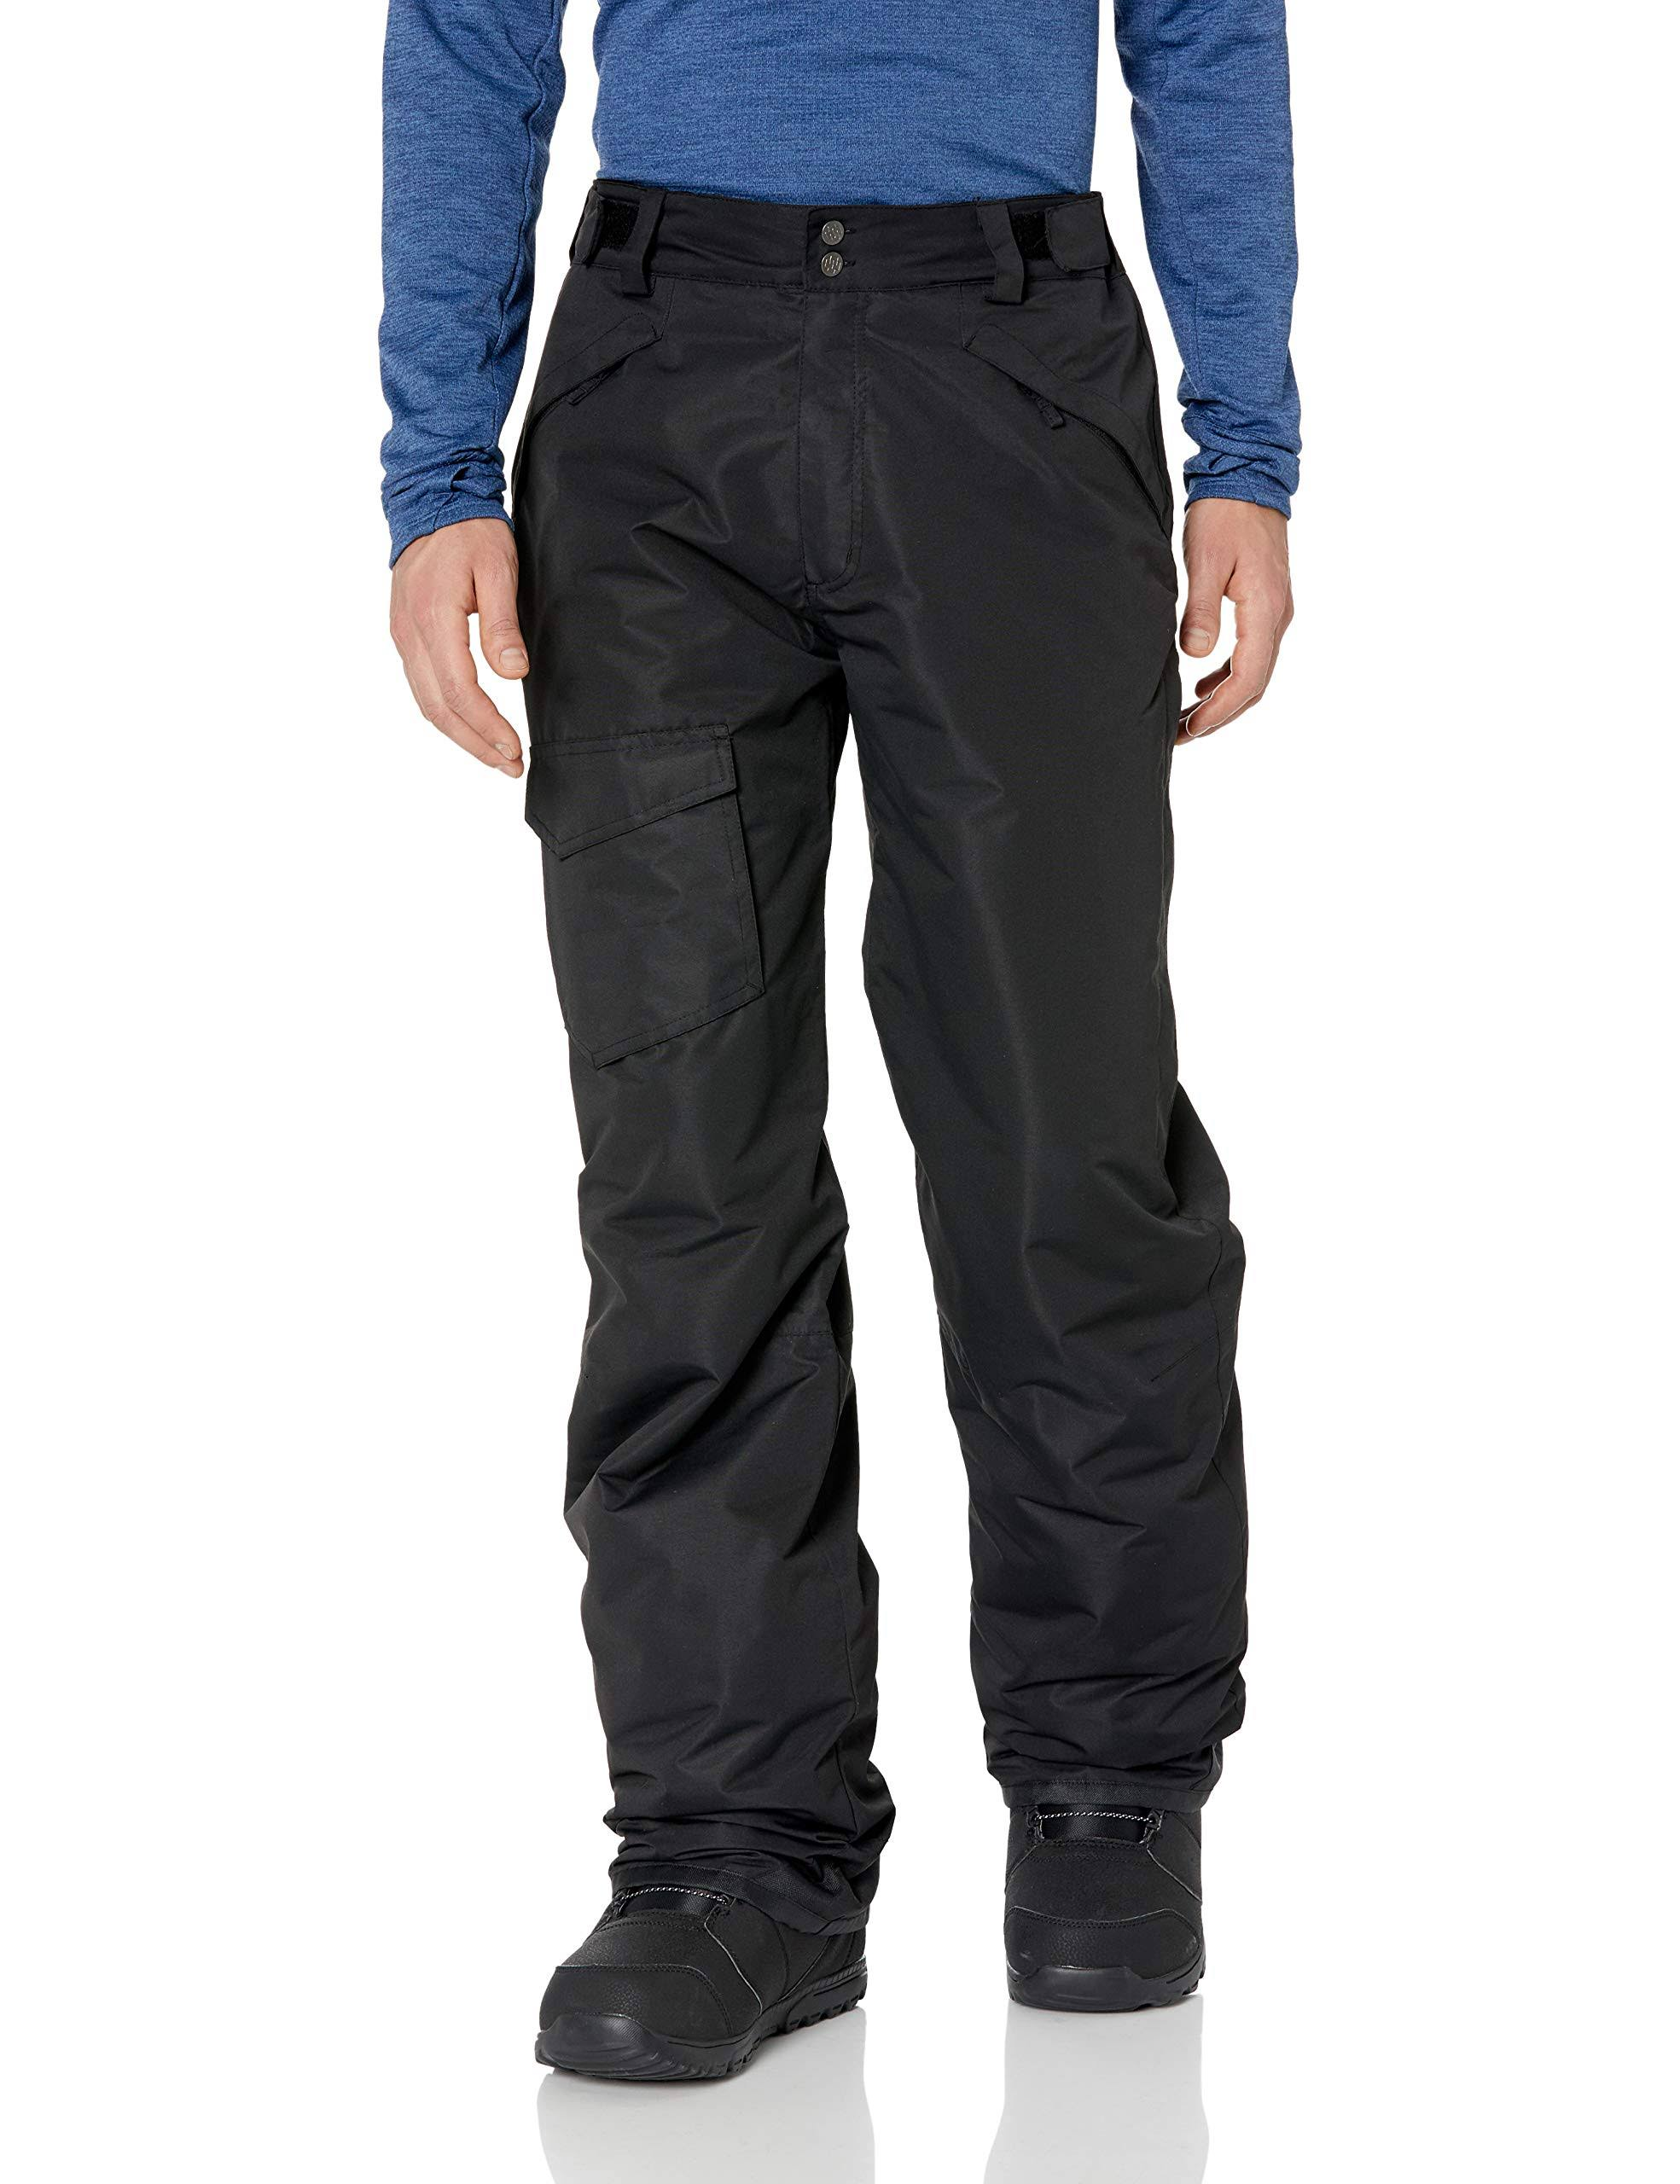 Pulse Men's Black Rider Ski/Snowboard Pants